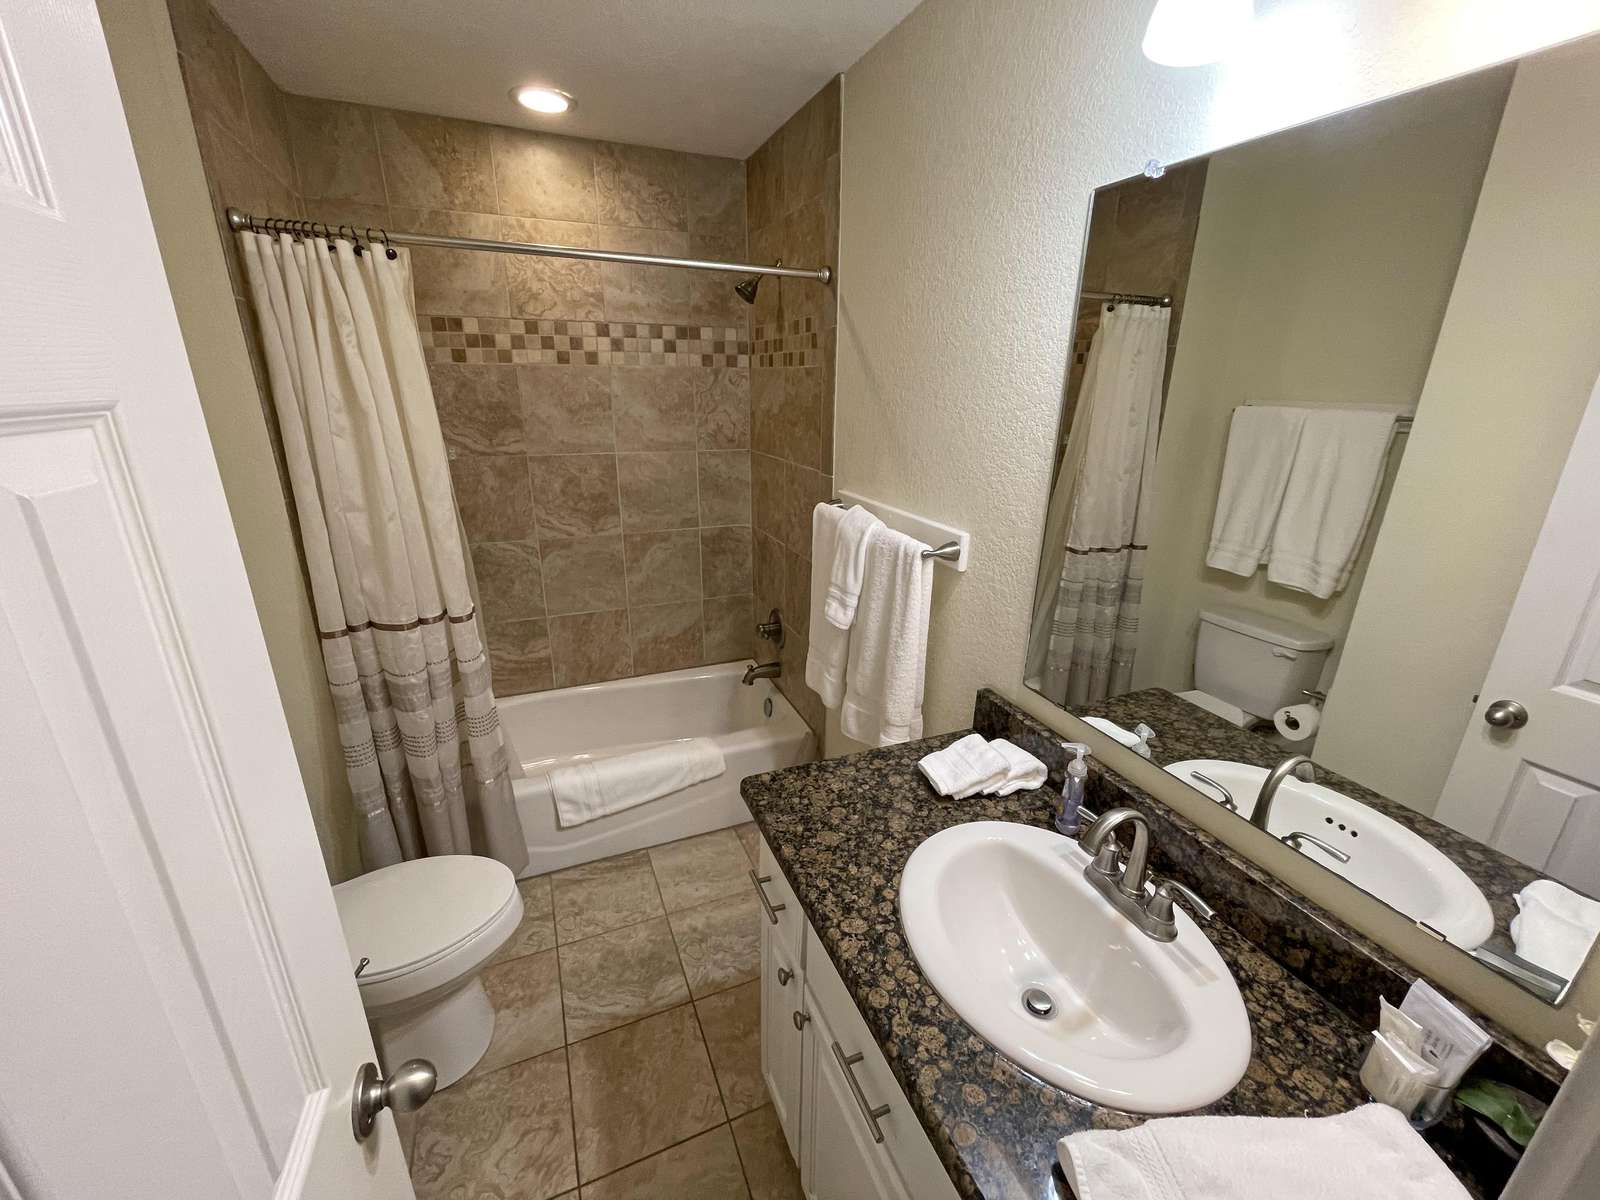 The upper level communal bathroom. All bathrooms are tiled with enamel tubs and granite counters throughout.